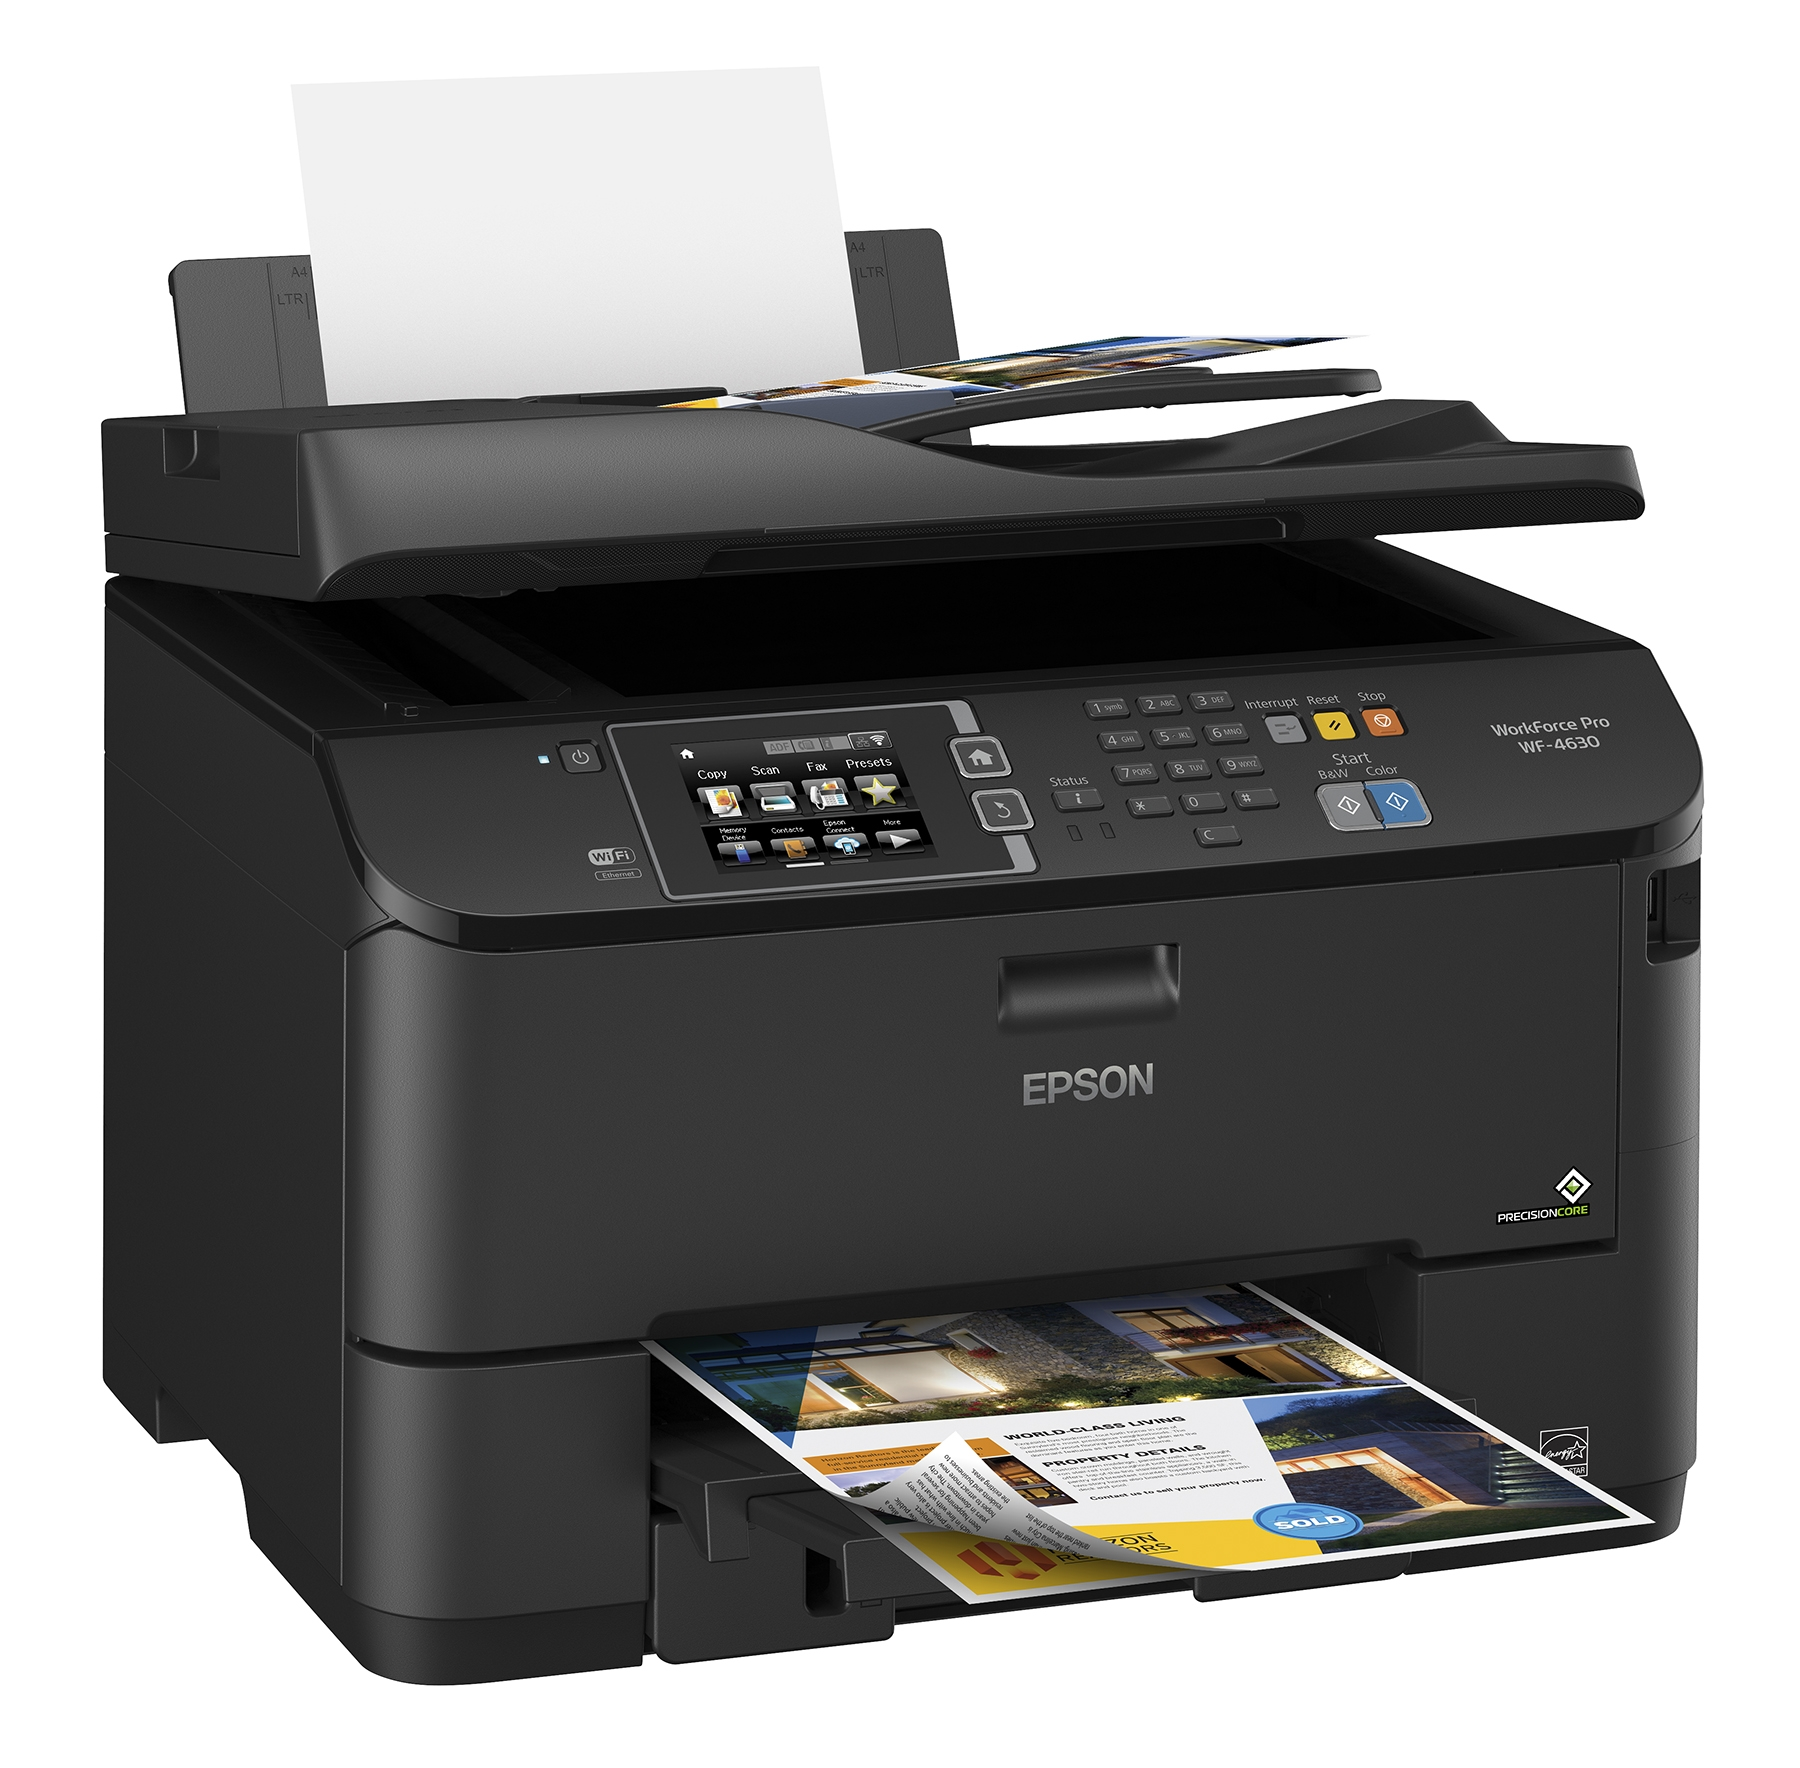 New Epson WorkForce Printers Dramatically Cut Color